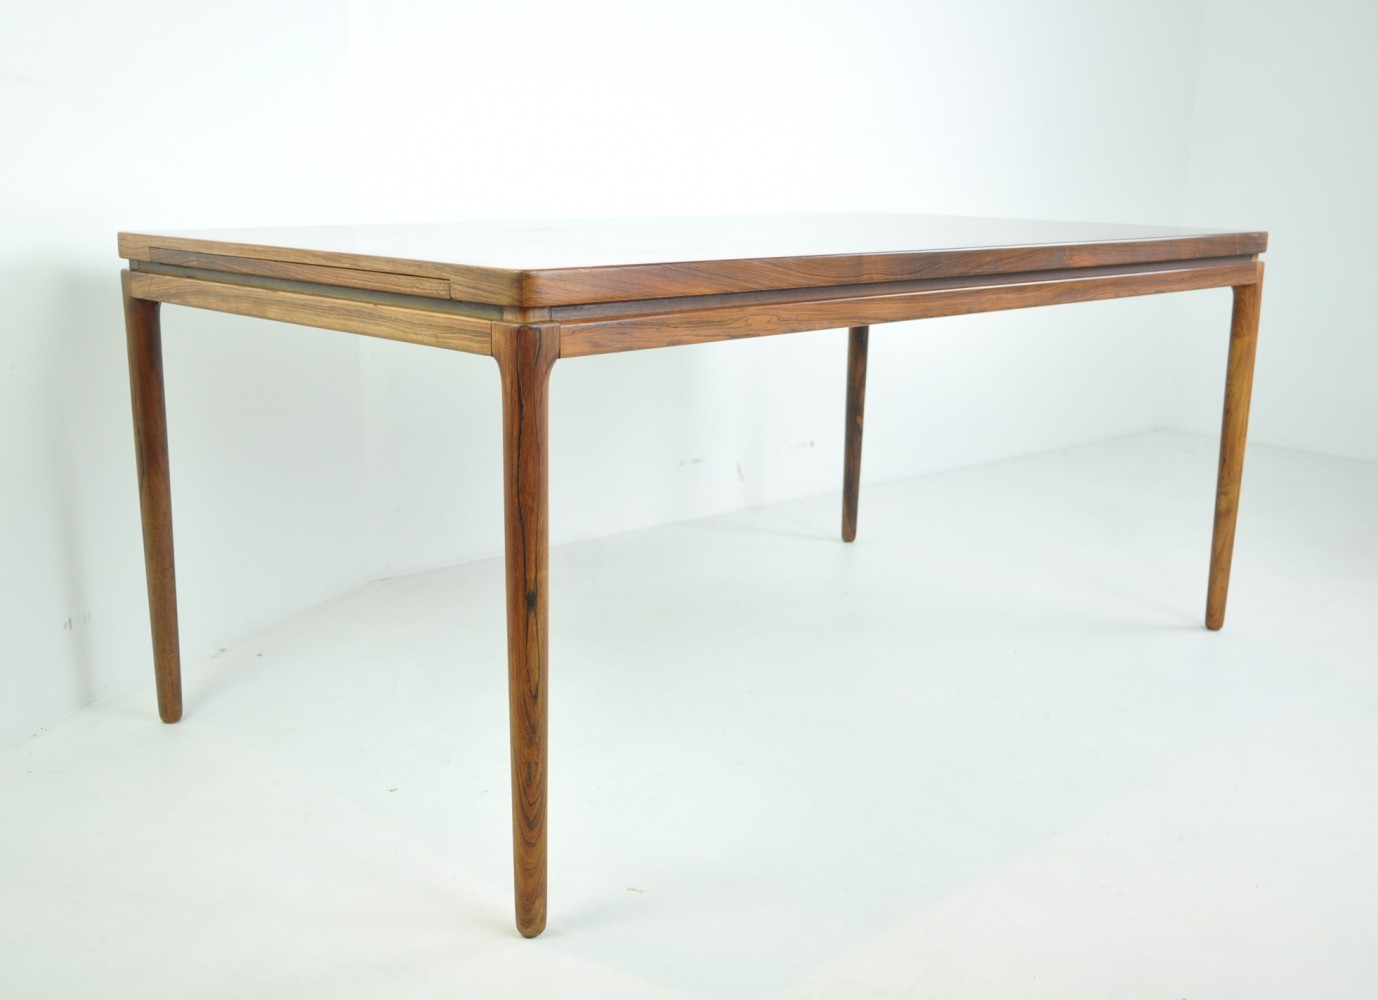 Extendable Dining Table by Ib Kofod-Larsen for Christian Linneberg, 1950s